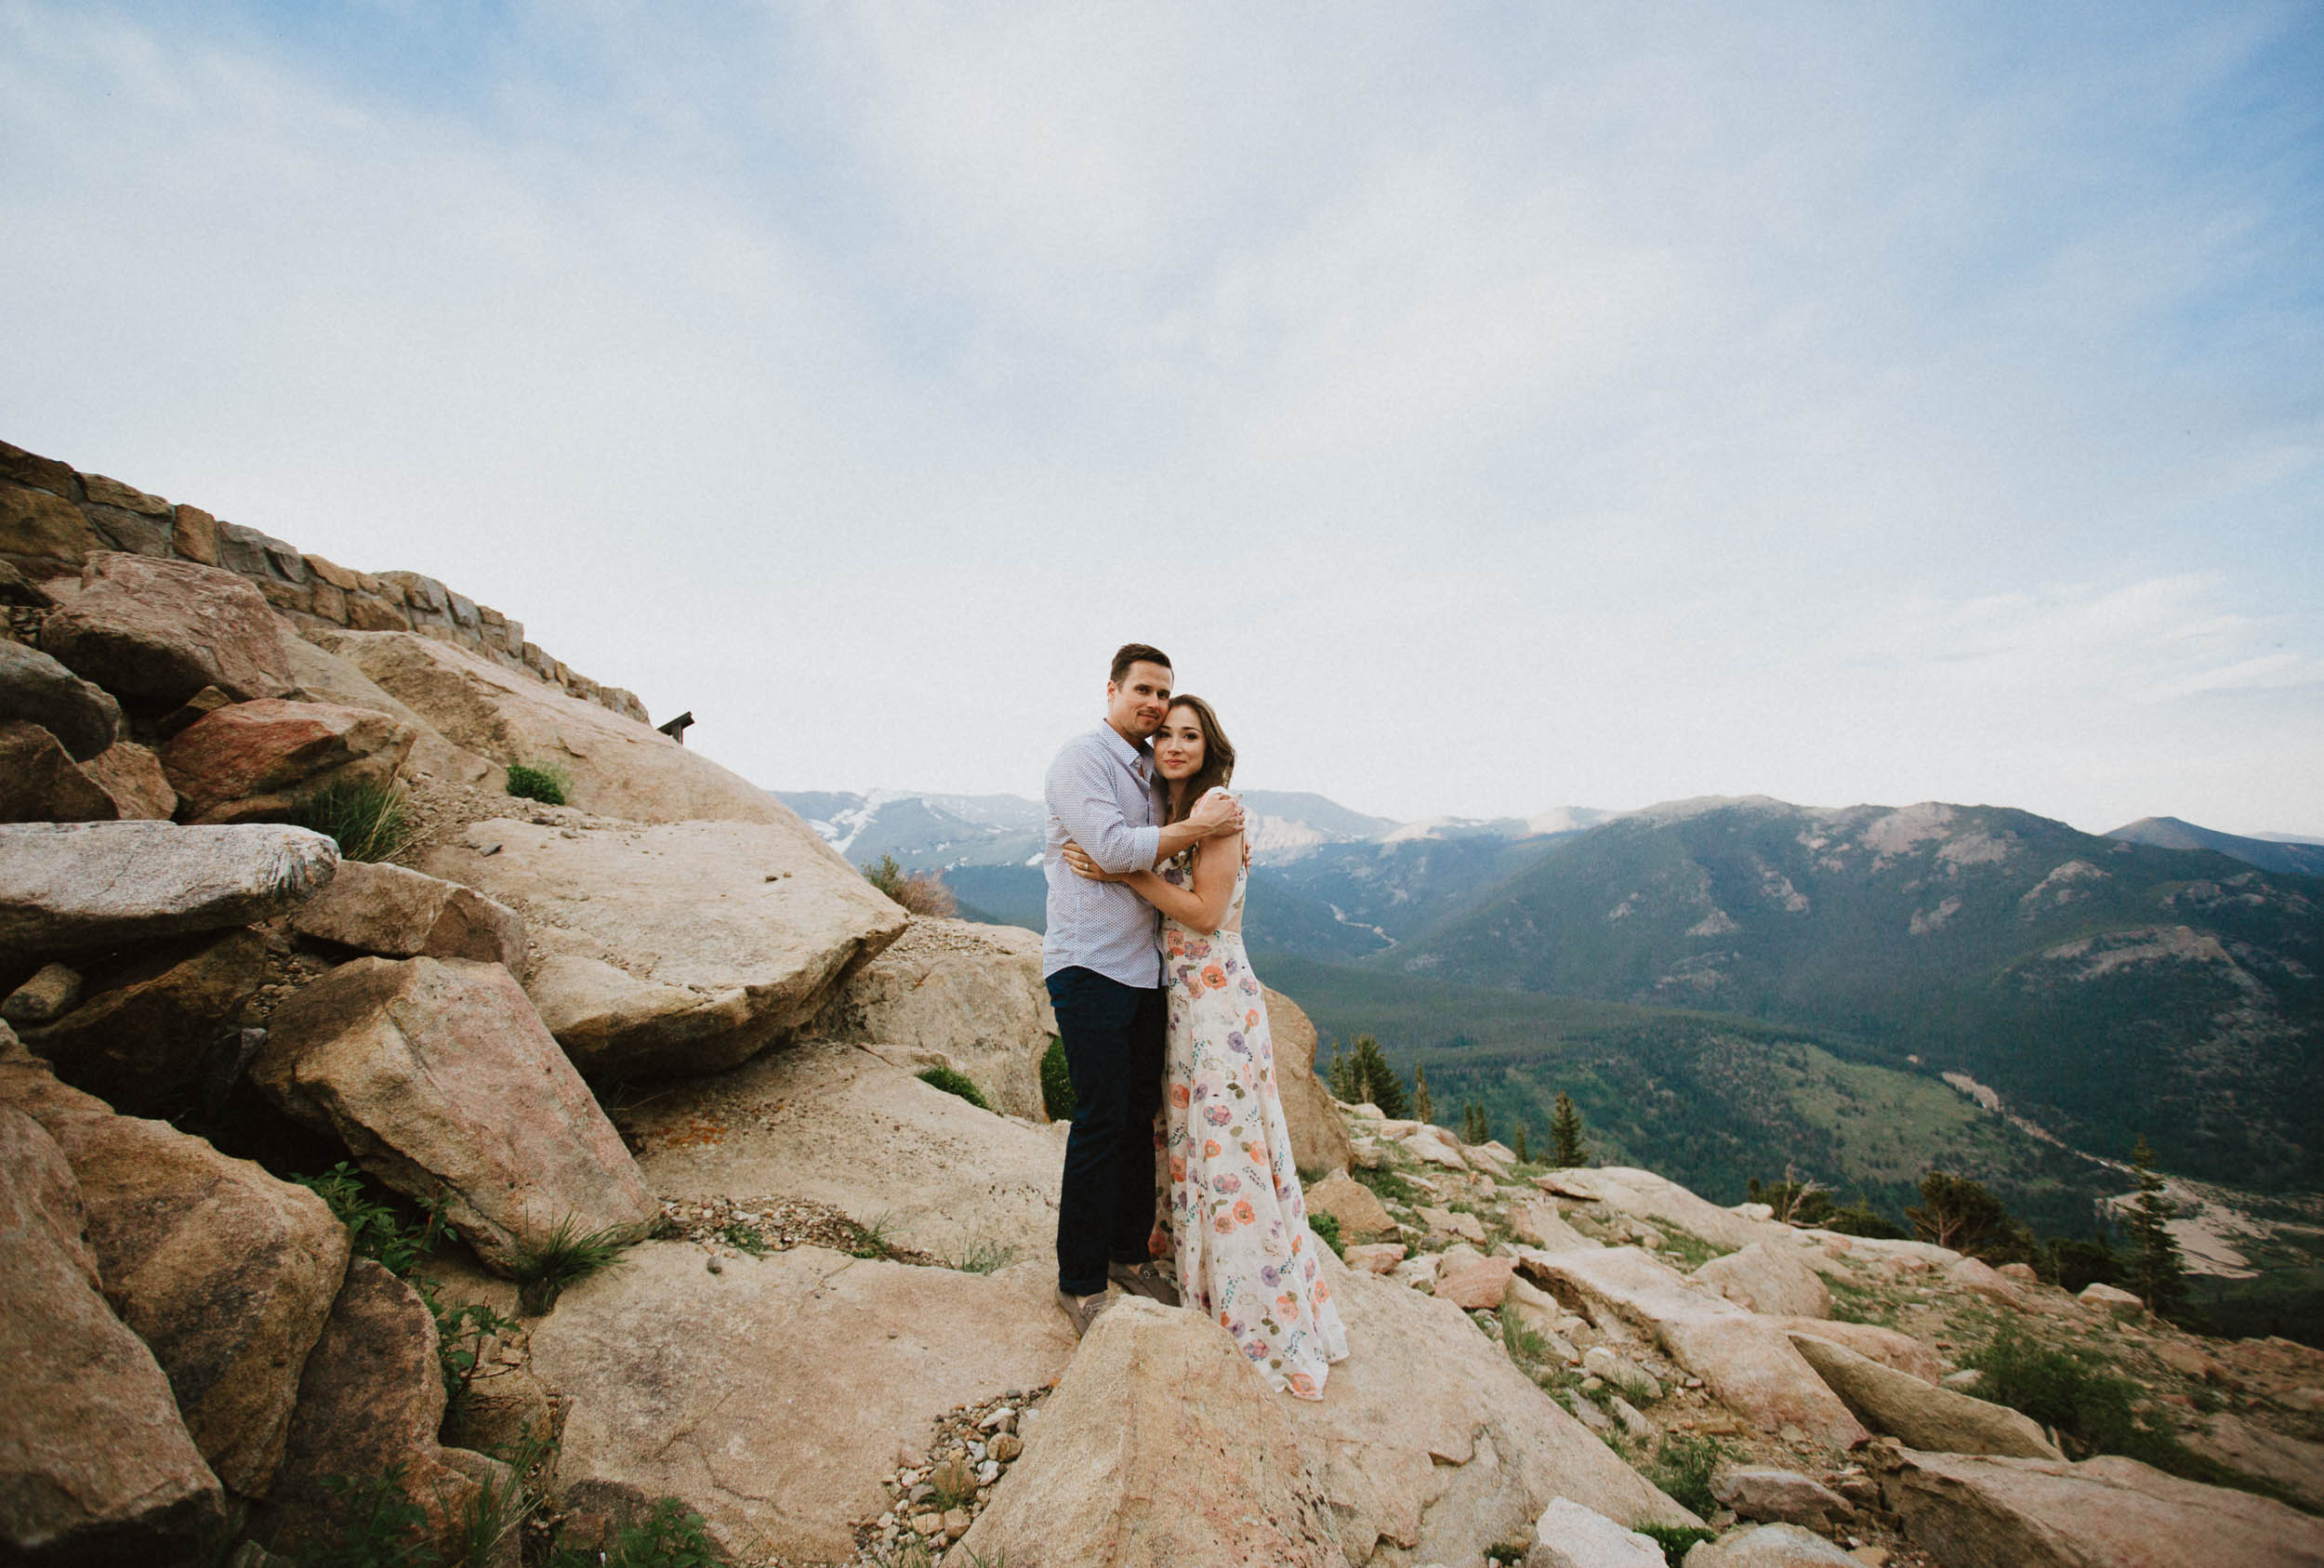 Rocky-Mountain-National-Park-Colorado-Engagement-029@2x.jpg